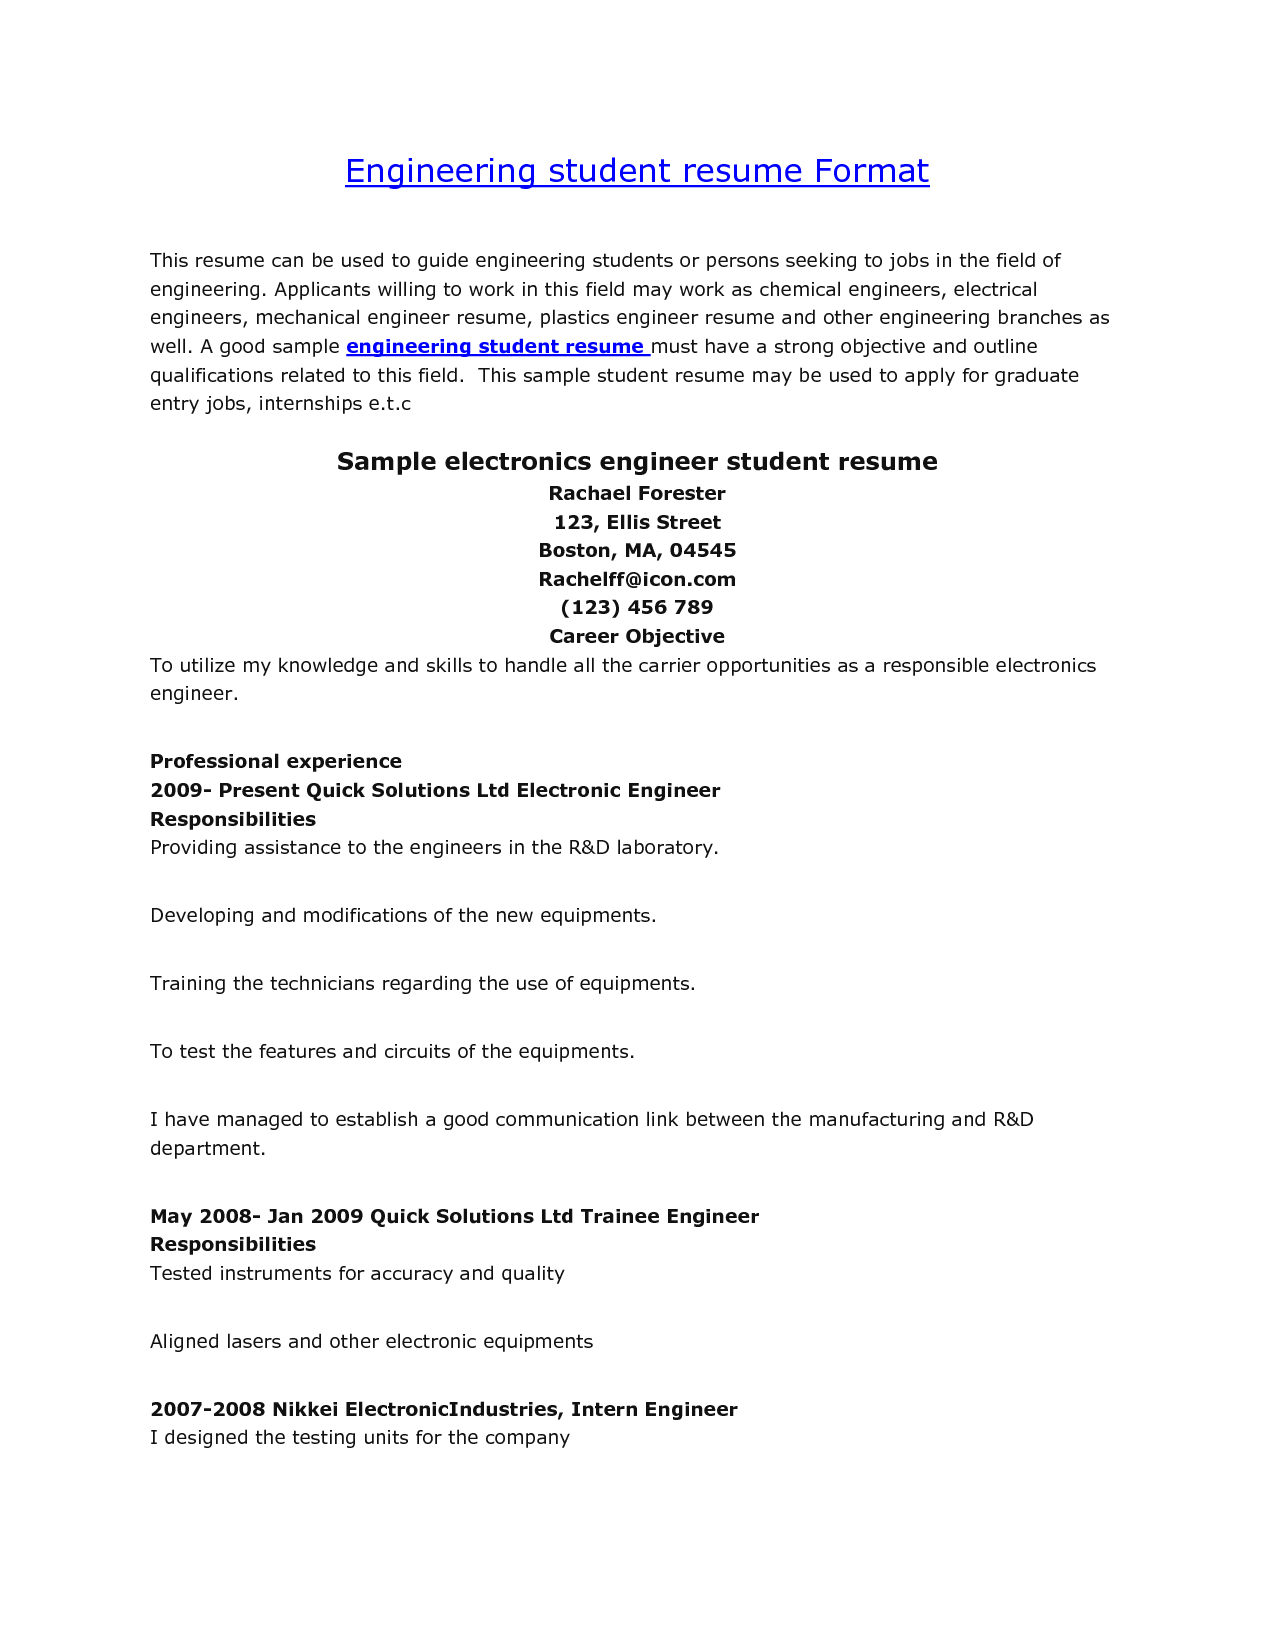 Generator Test Engineer Sample Resume Pinresumejob On Resume Job  Pinterest  Resume Format Job